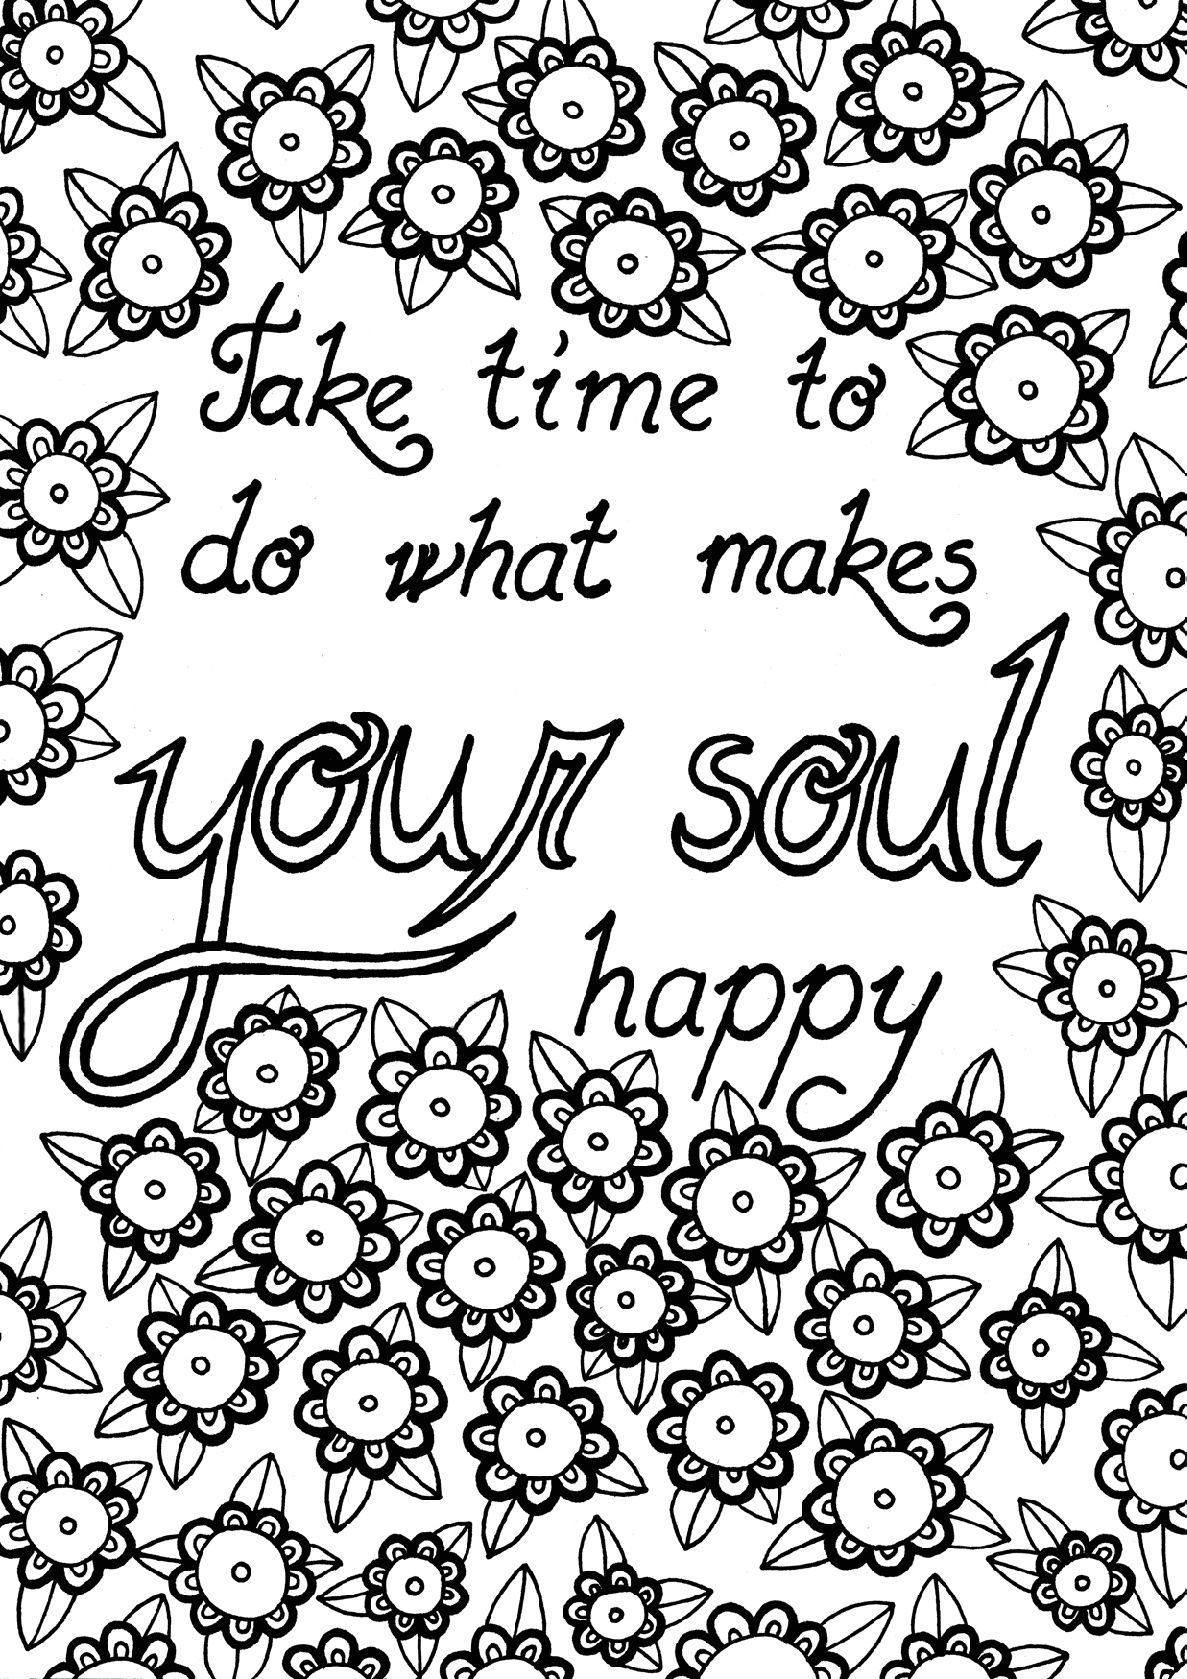 Take Time To Do What Makes Your Soul Happy Coloring Page